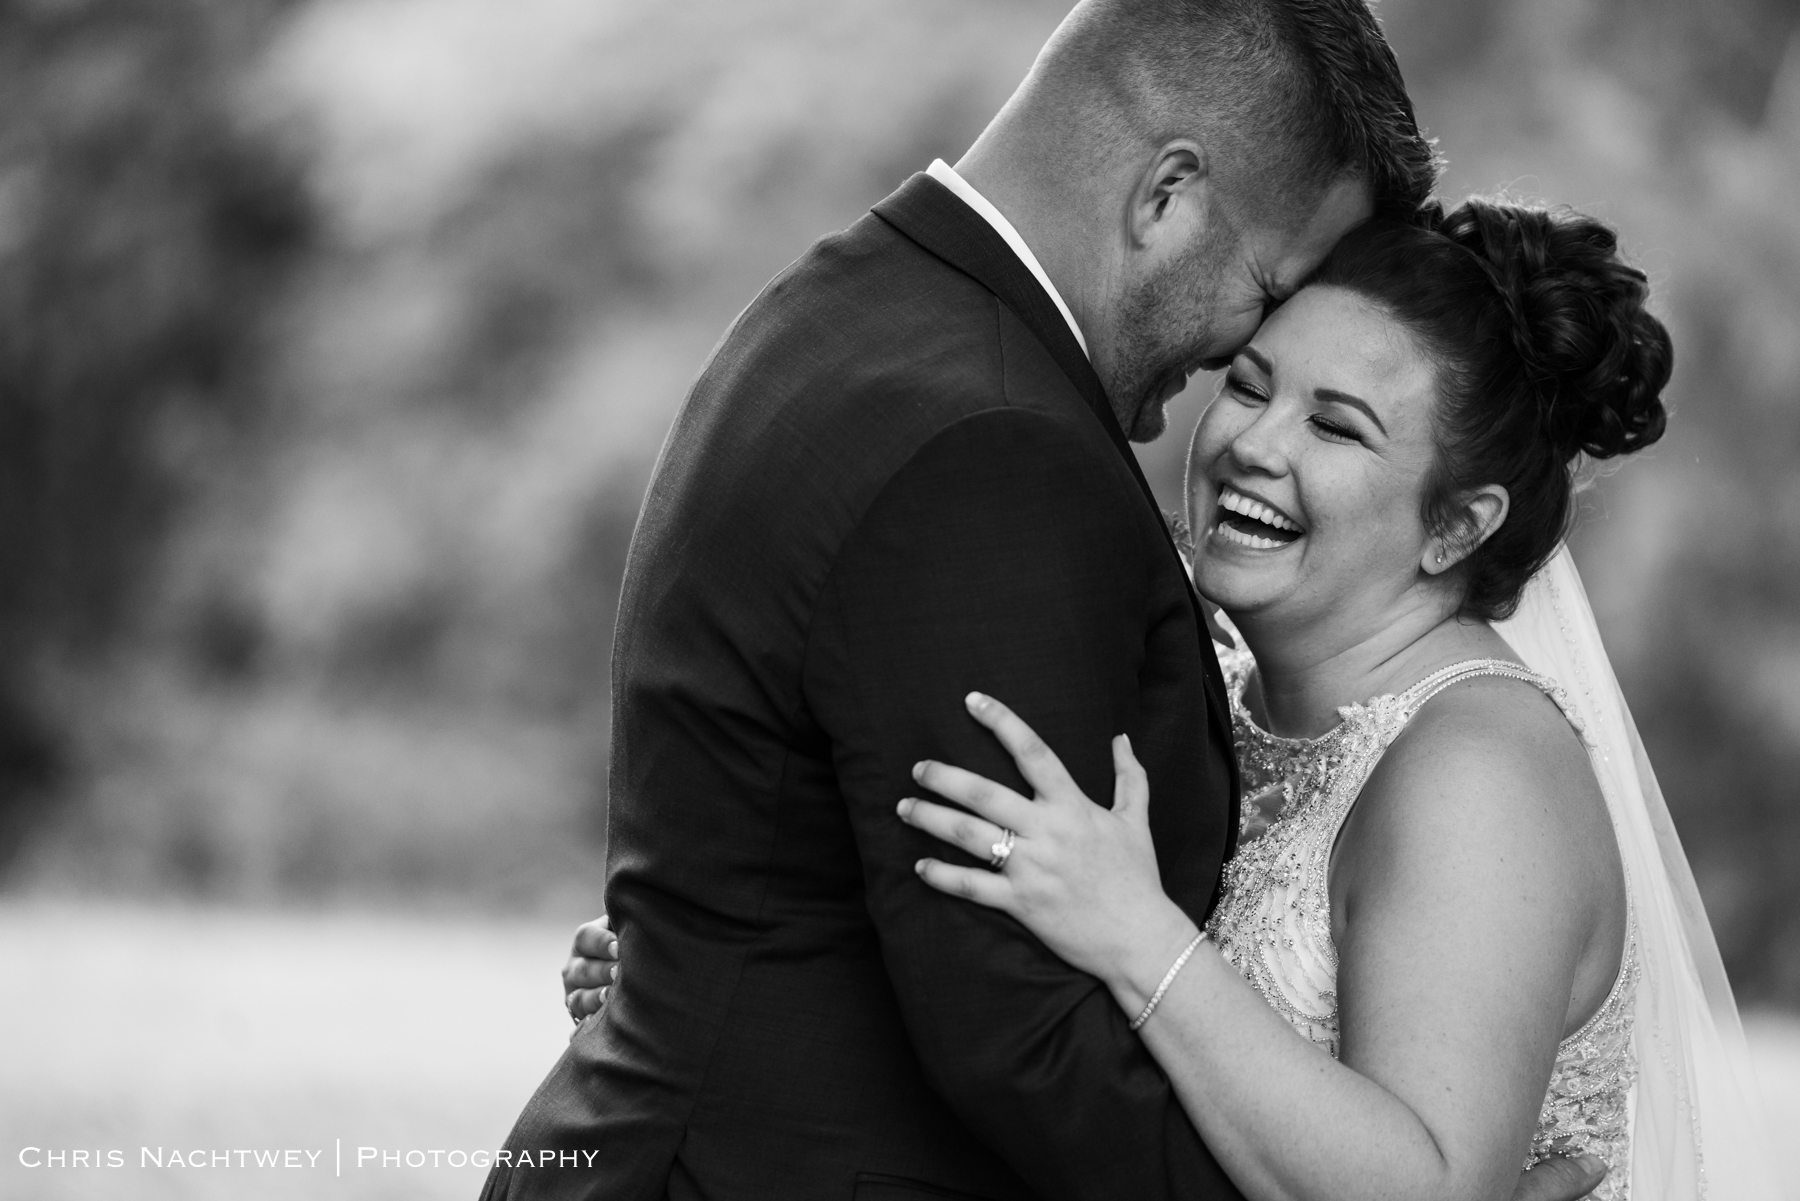 wedding-photographers-connecticut-affordable-chris-nachtwey-photography-2019-17.jpg